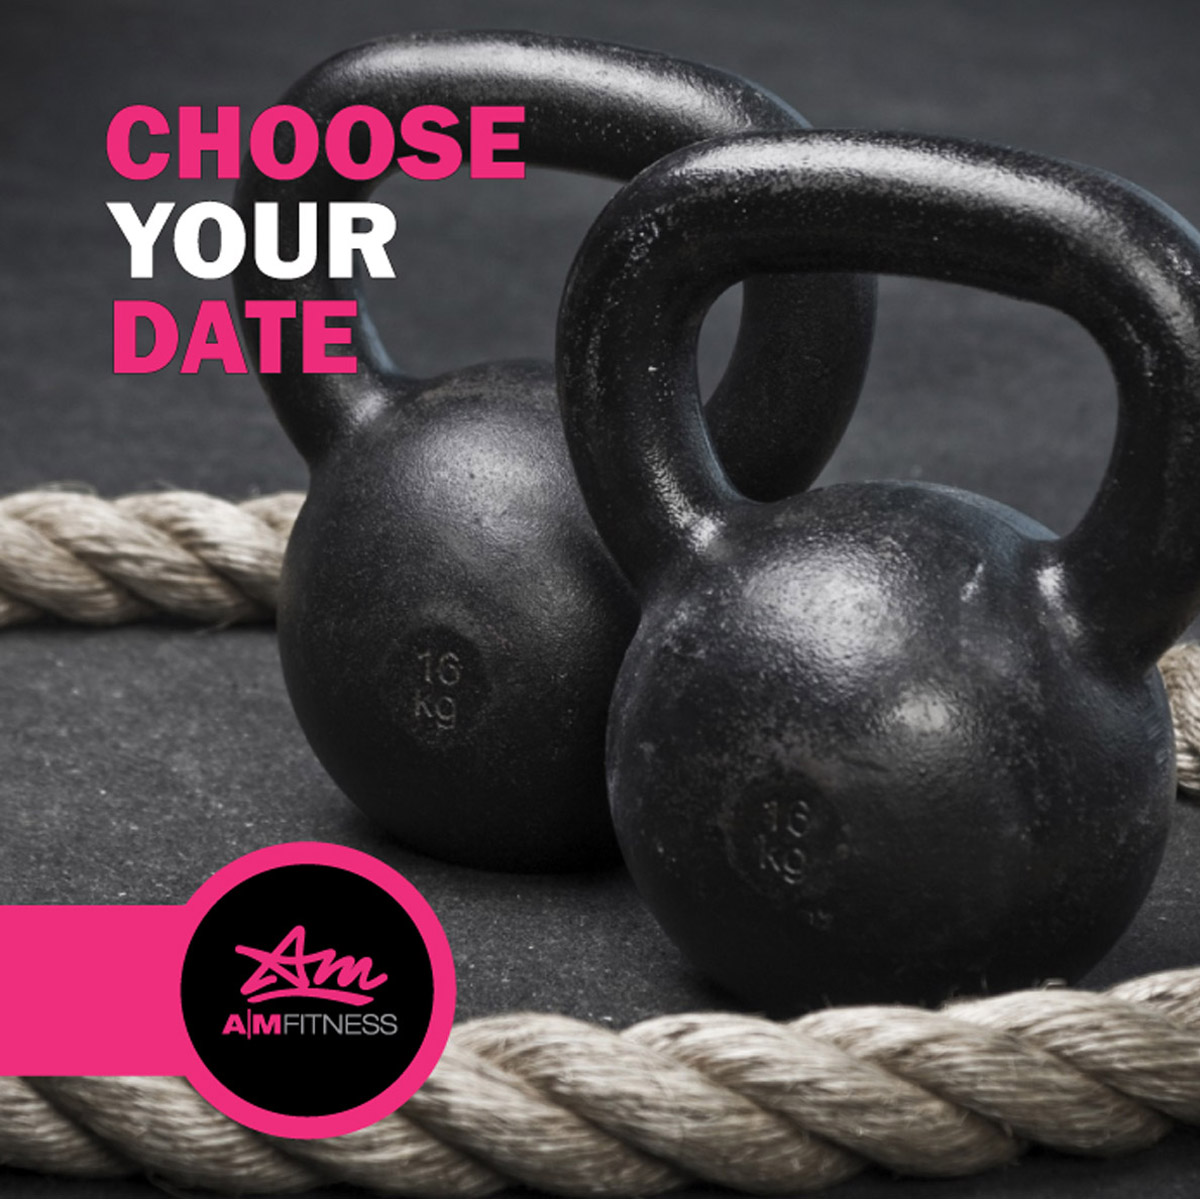 am_fitness_choose_your_date_2